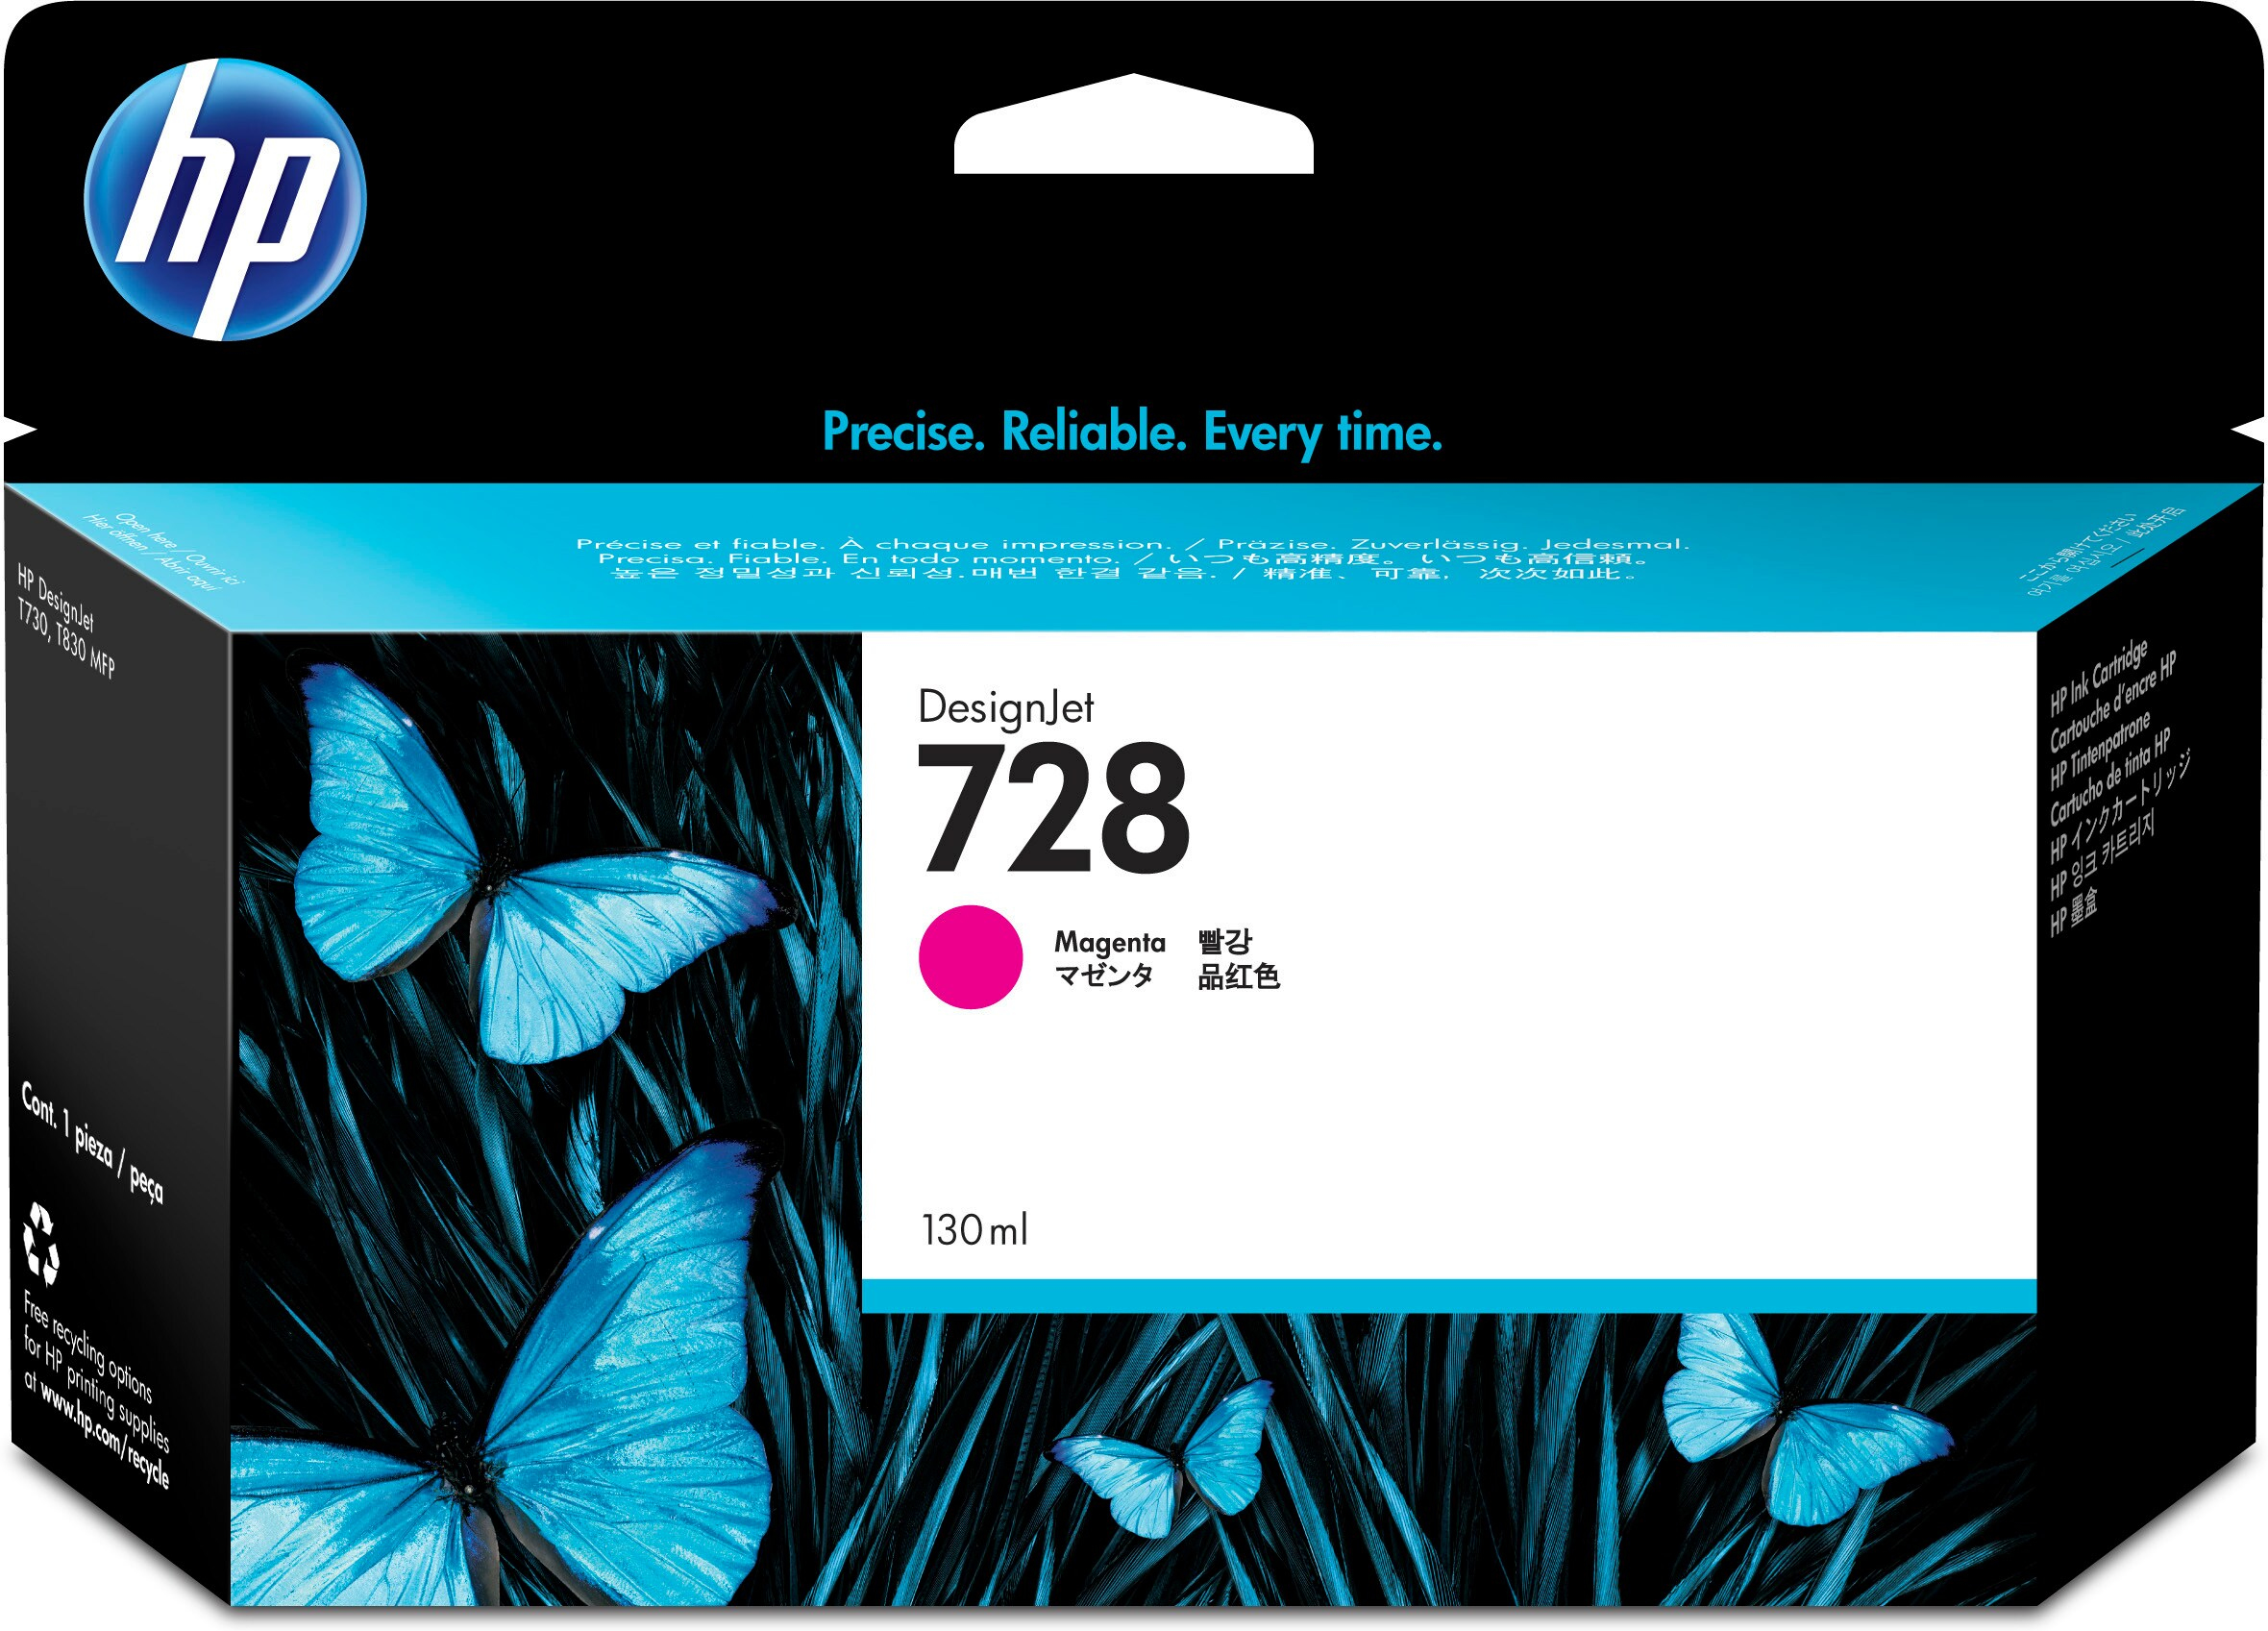 Hpf9j66a       Hp 728 130ml Magenta Ink       Hp 728 130ml Magenta Ink                                     - UF01